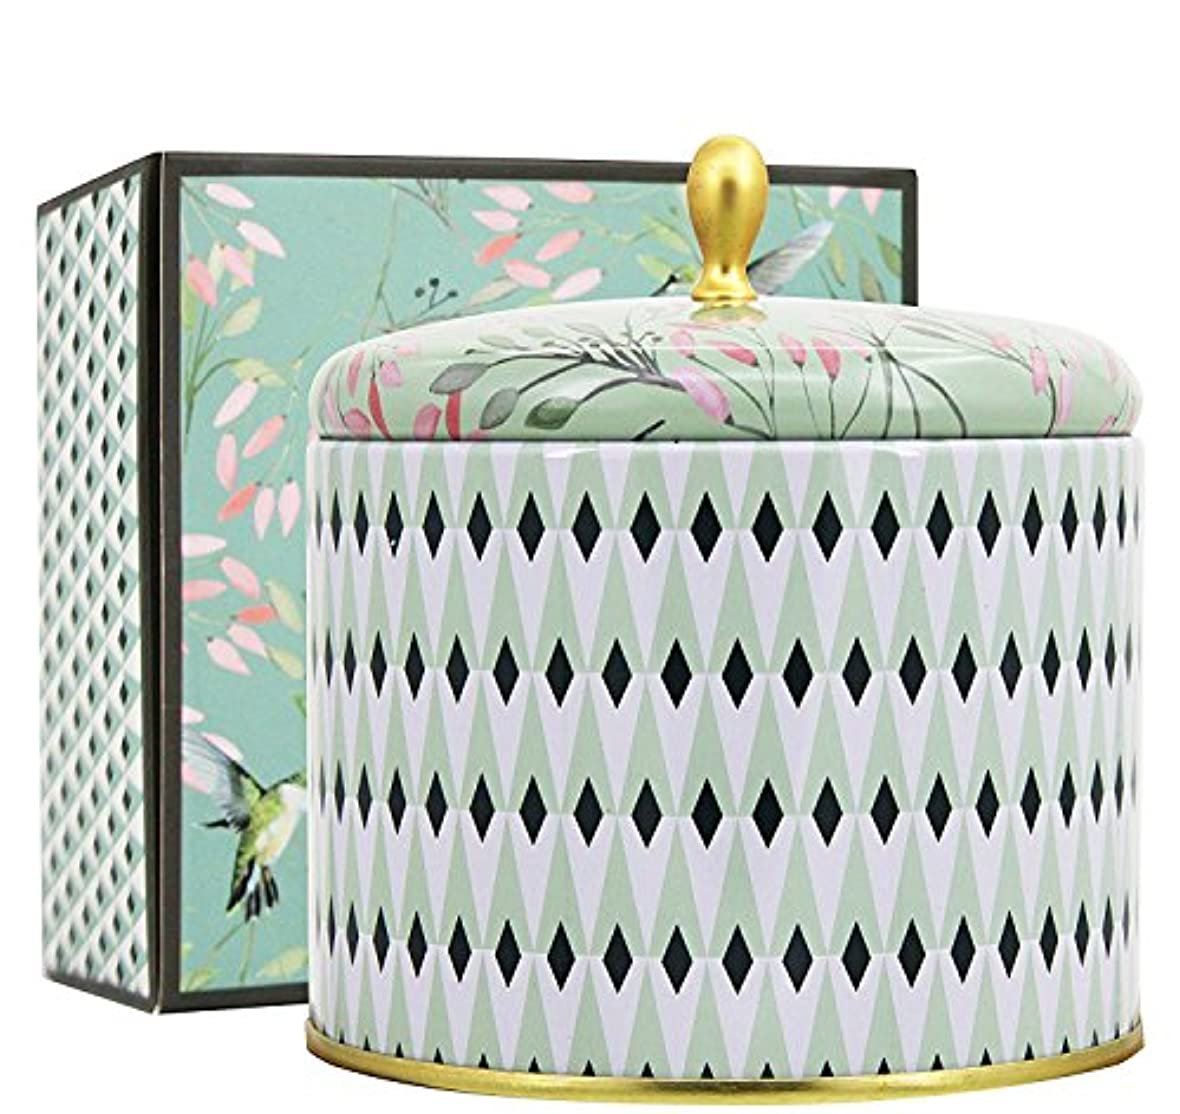 (White Tea Candle) - Scented Candles 410ml White Tea Large Tin Aromatherapy Candle 2 Wicks Natural Wax, Valentine's...